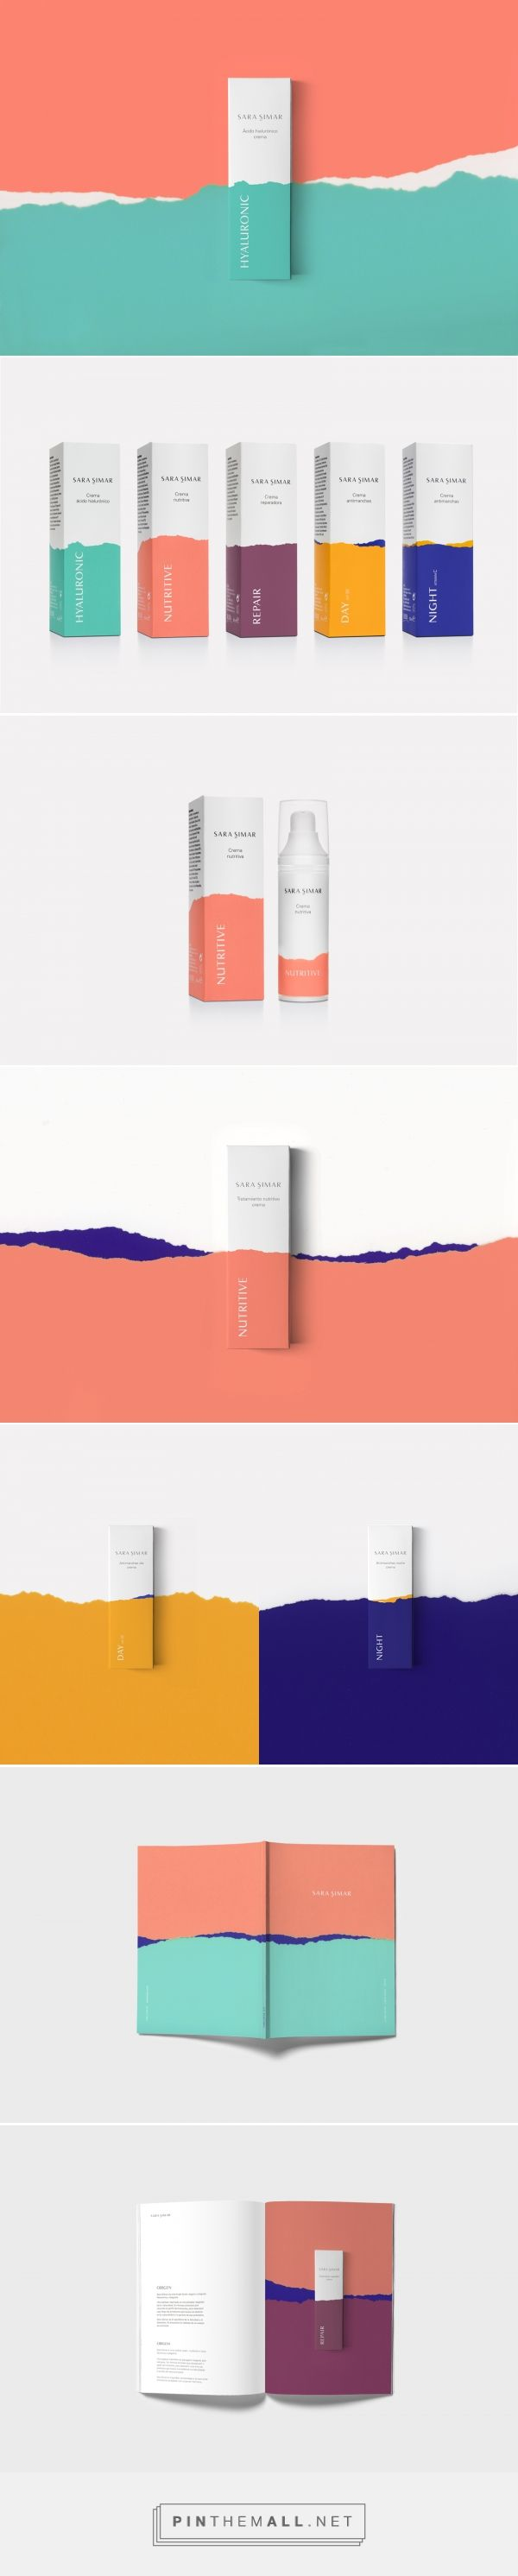 Sara Simar #cosmetics #packaging #design by Democracia estudio - https://www.packagingoftheworld.com/2018/03/sara-simar.html